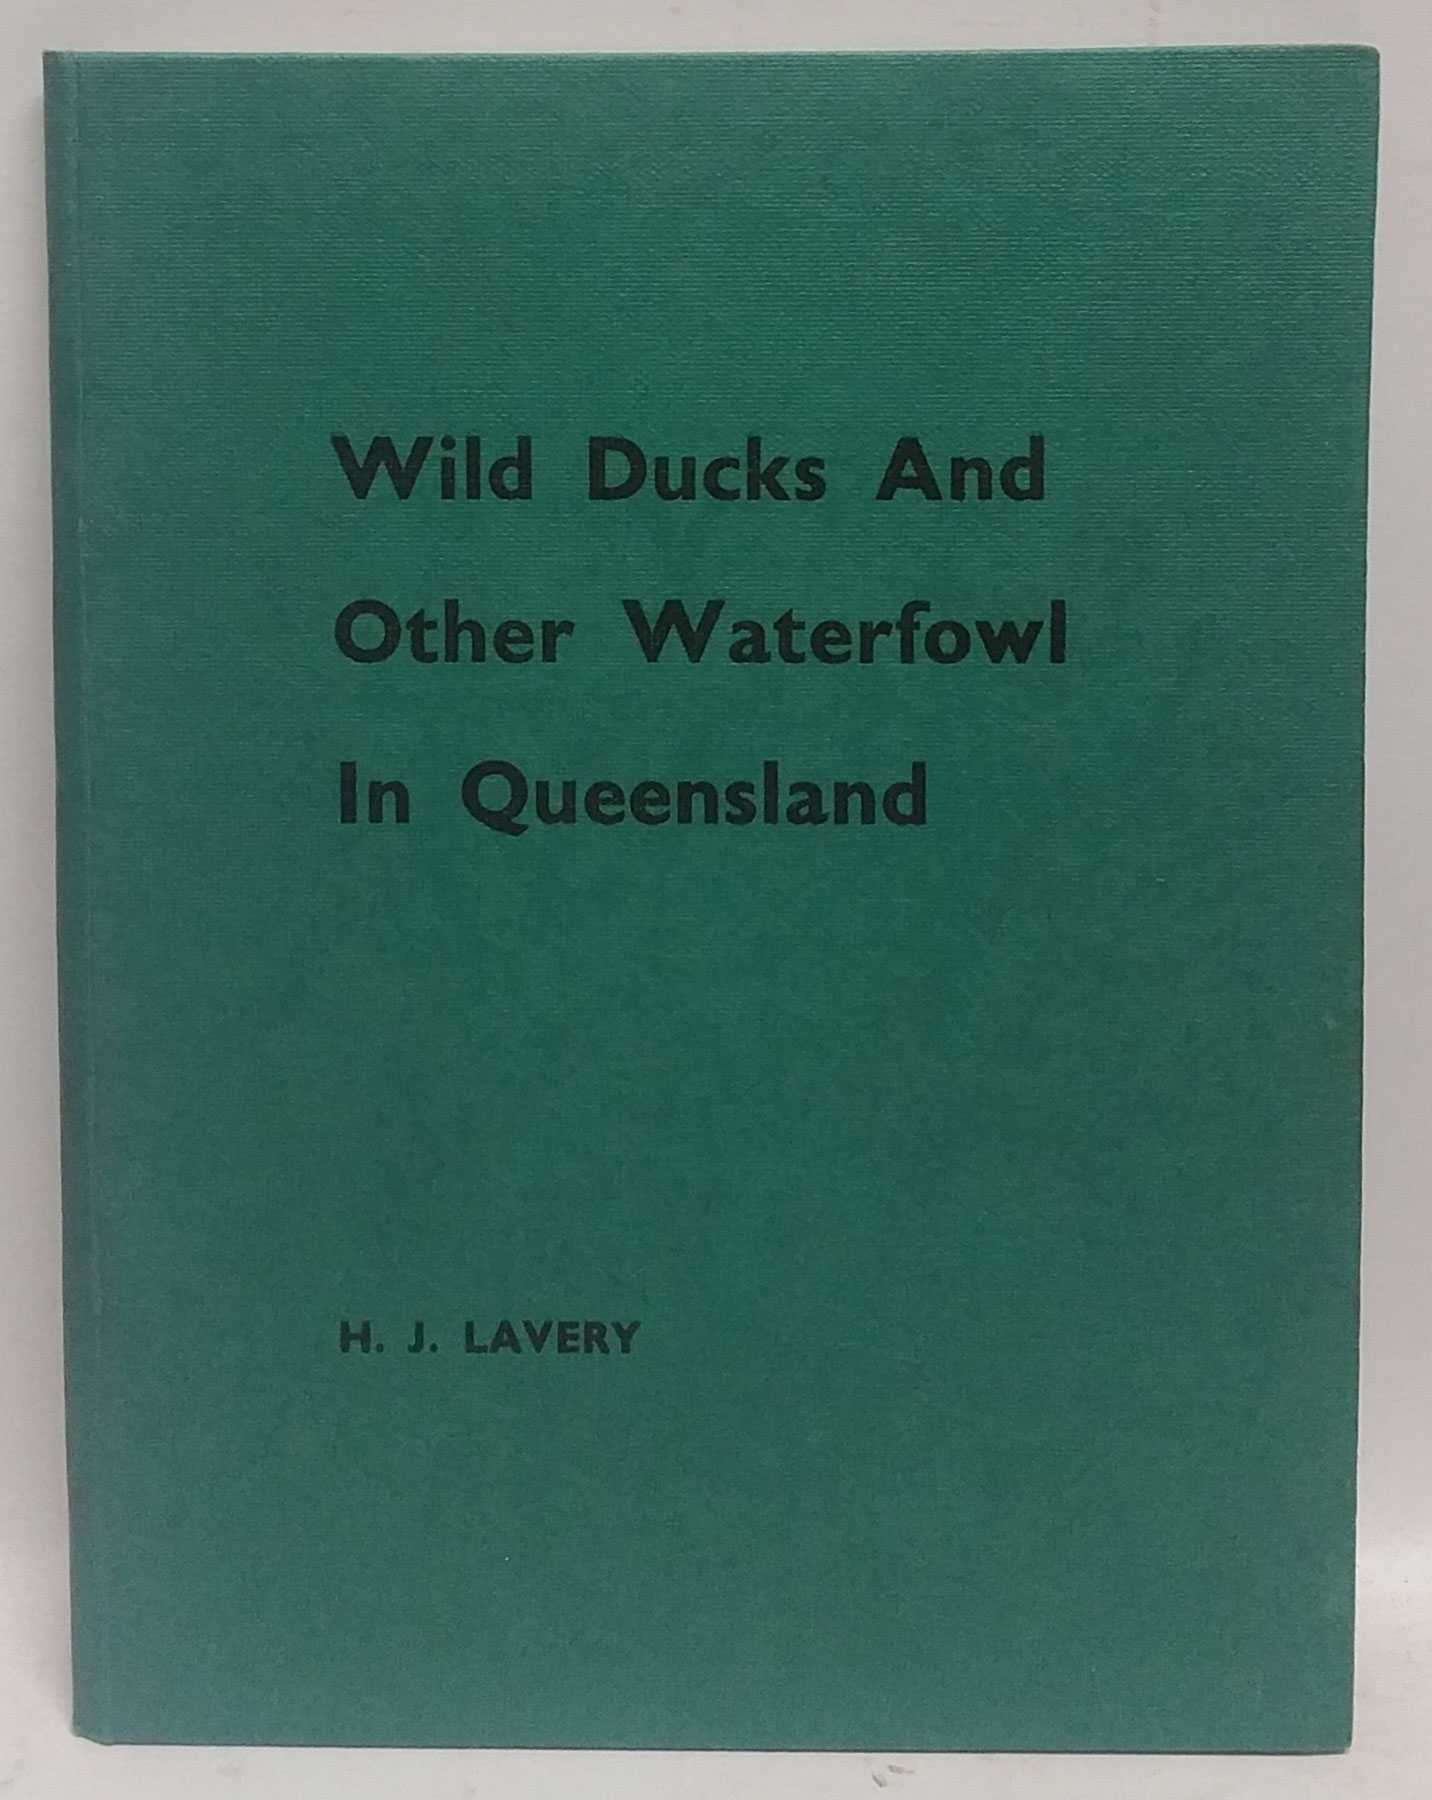 Wild Ducks And Other Waterfowl In Queensland, H. J. Lavery